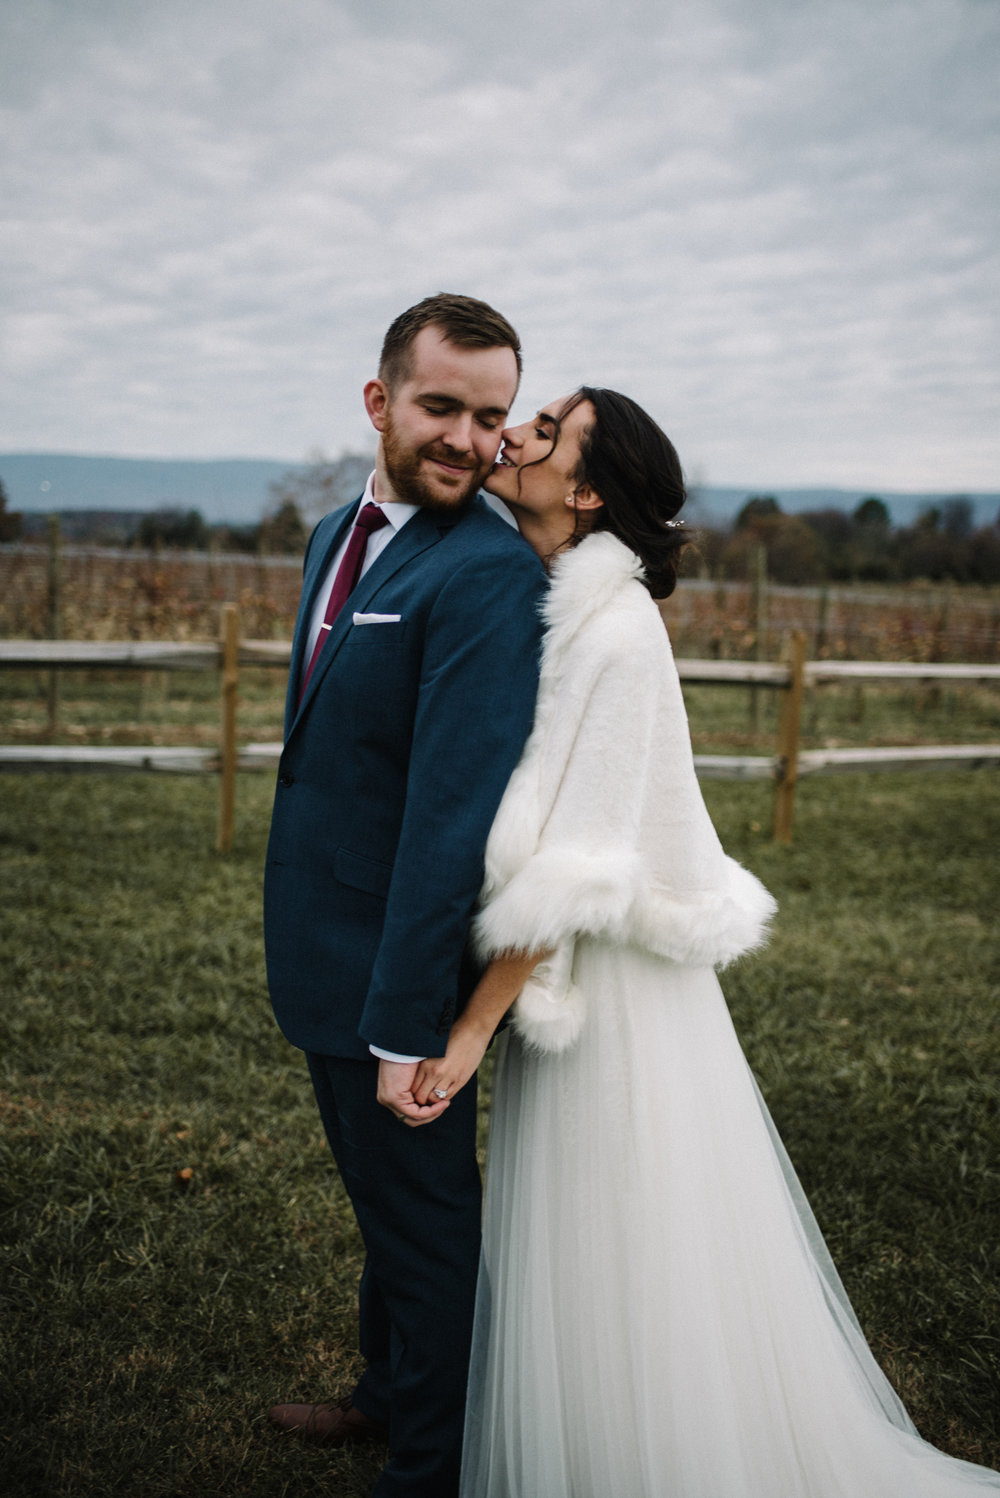 Alyssa and Jesse Winter Vineyard Wedding Luray Virginia Shenandoah Valley Faithbrooke_67.JPG